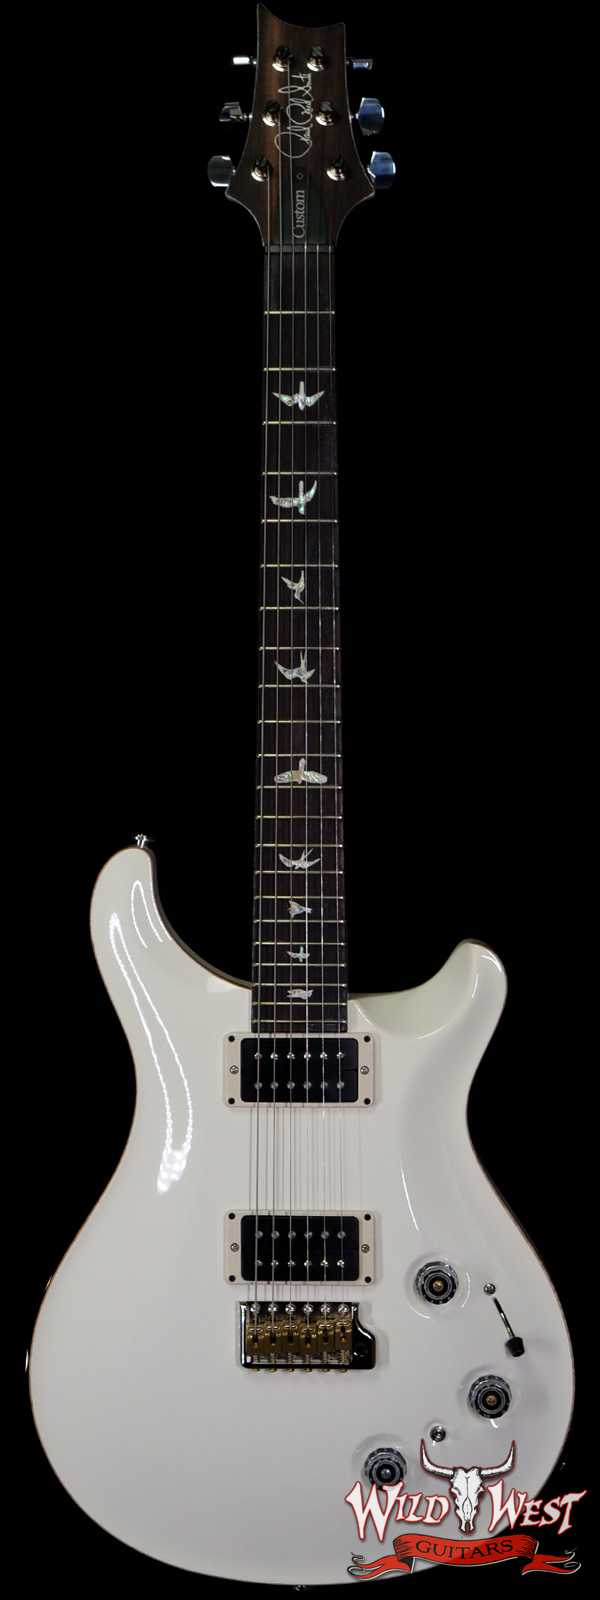 Paul Reed Smith PRS Core Model Flame Maple Top Custom 22 Piezo Rosewood Fingerboard Antique White